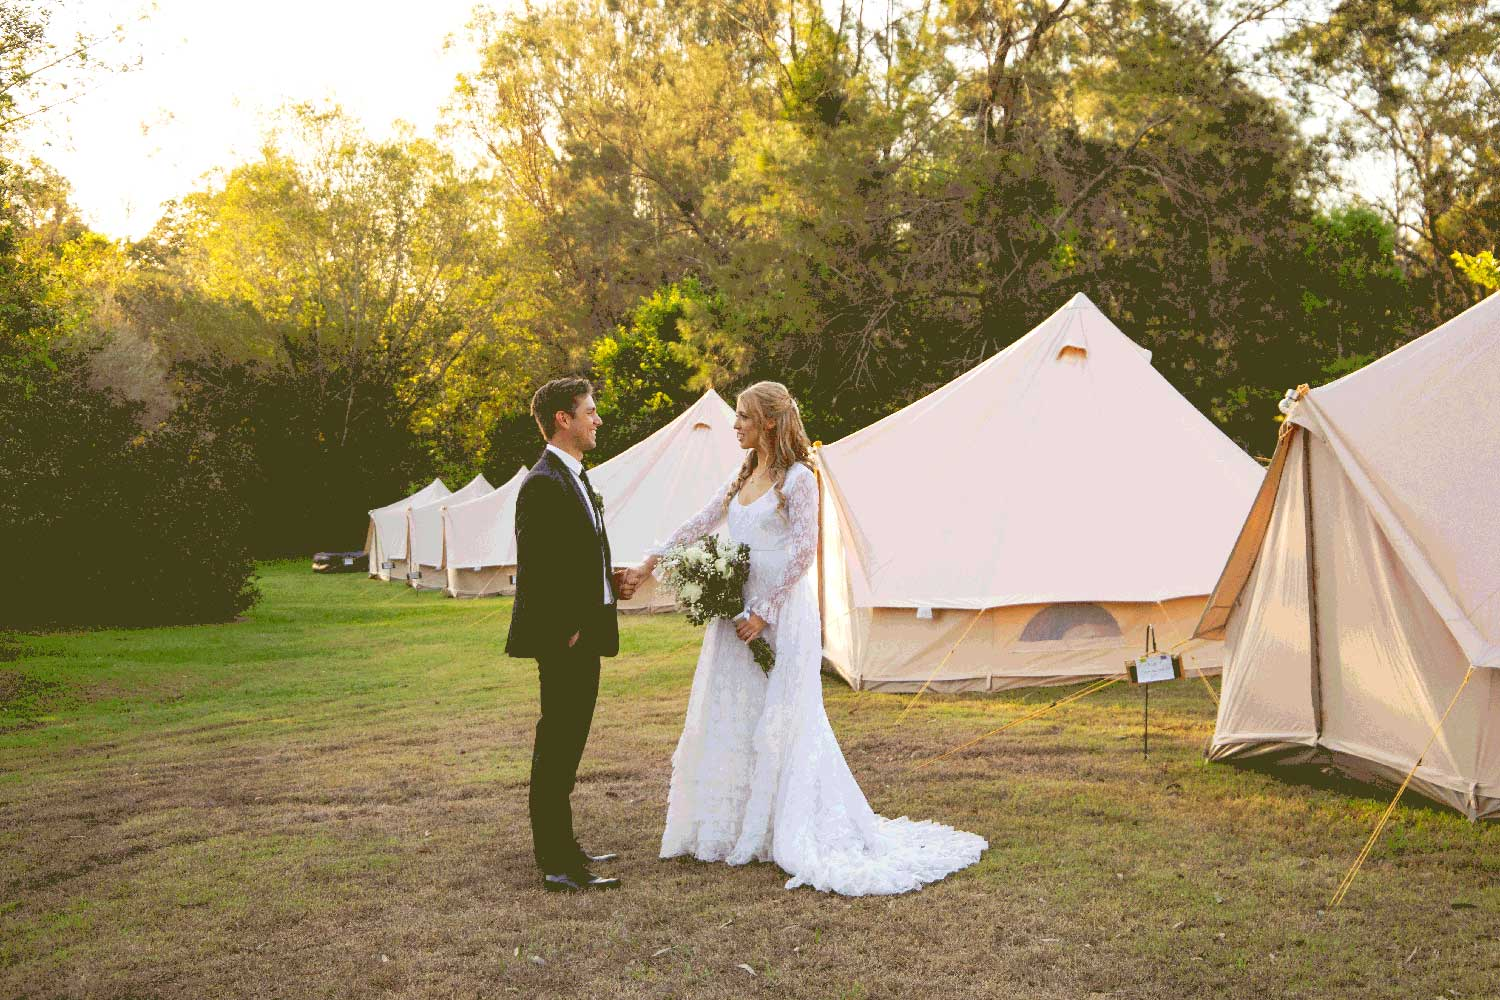 glamping-married-couple-wedding-tent-hire